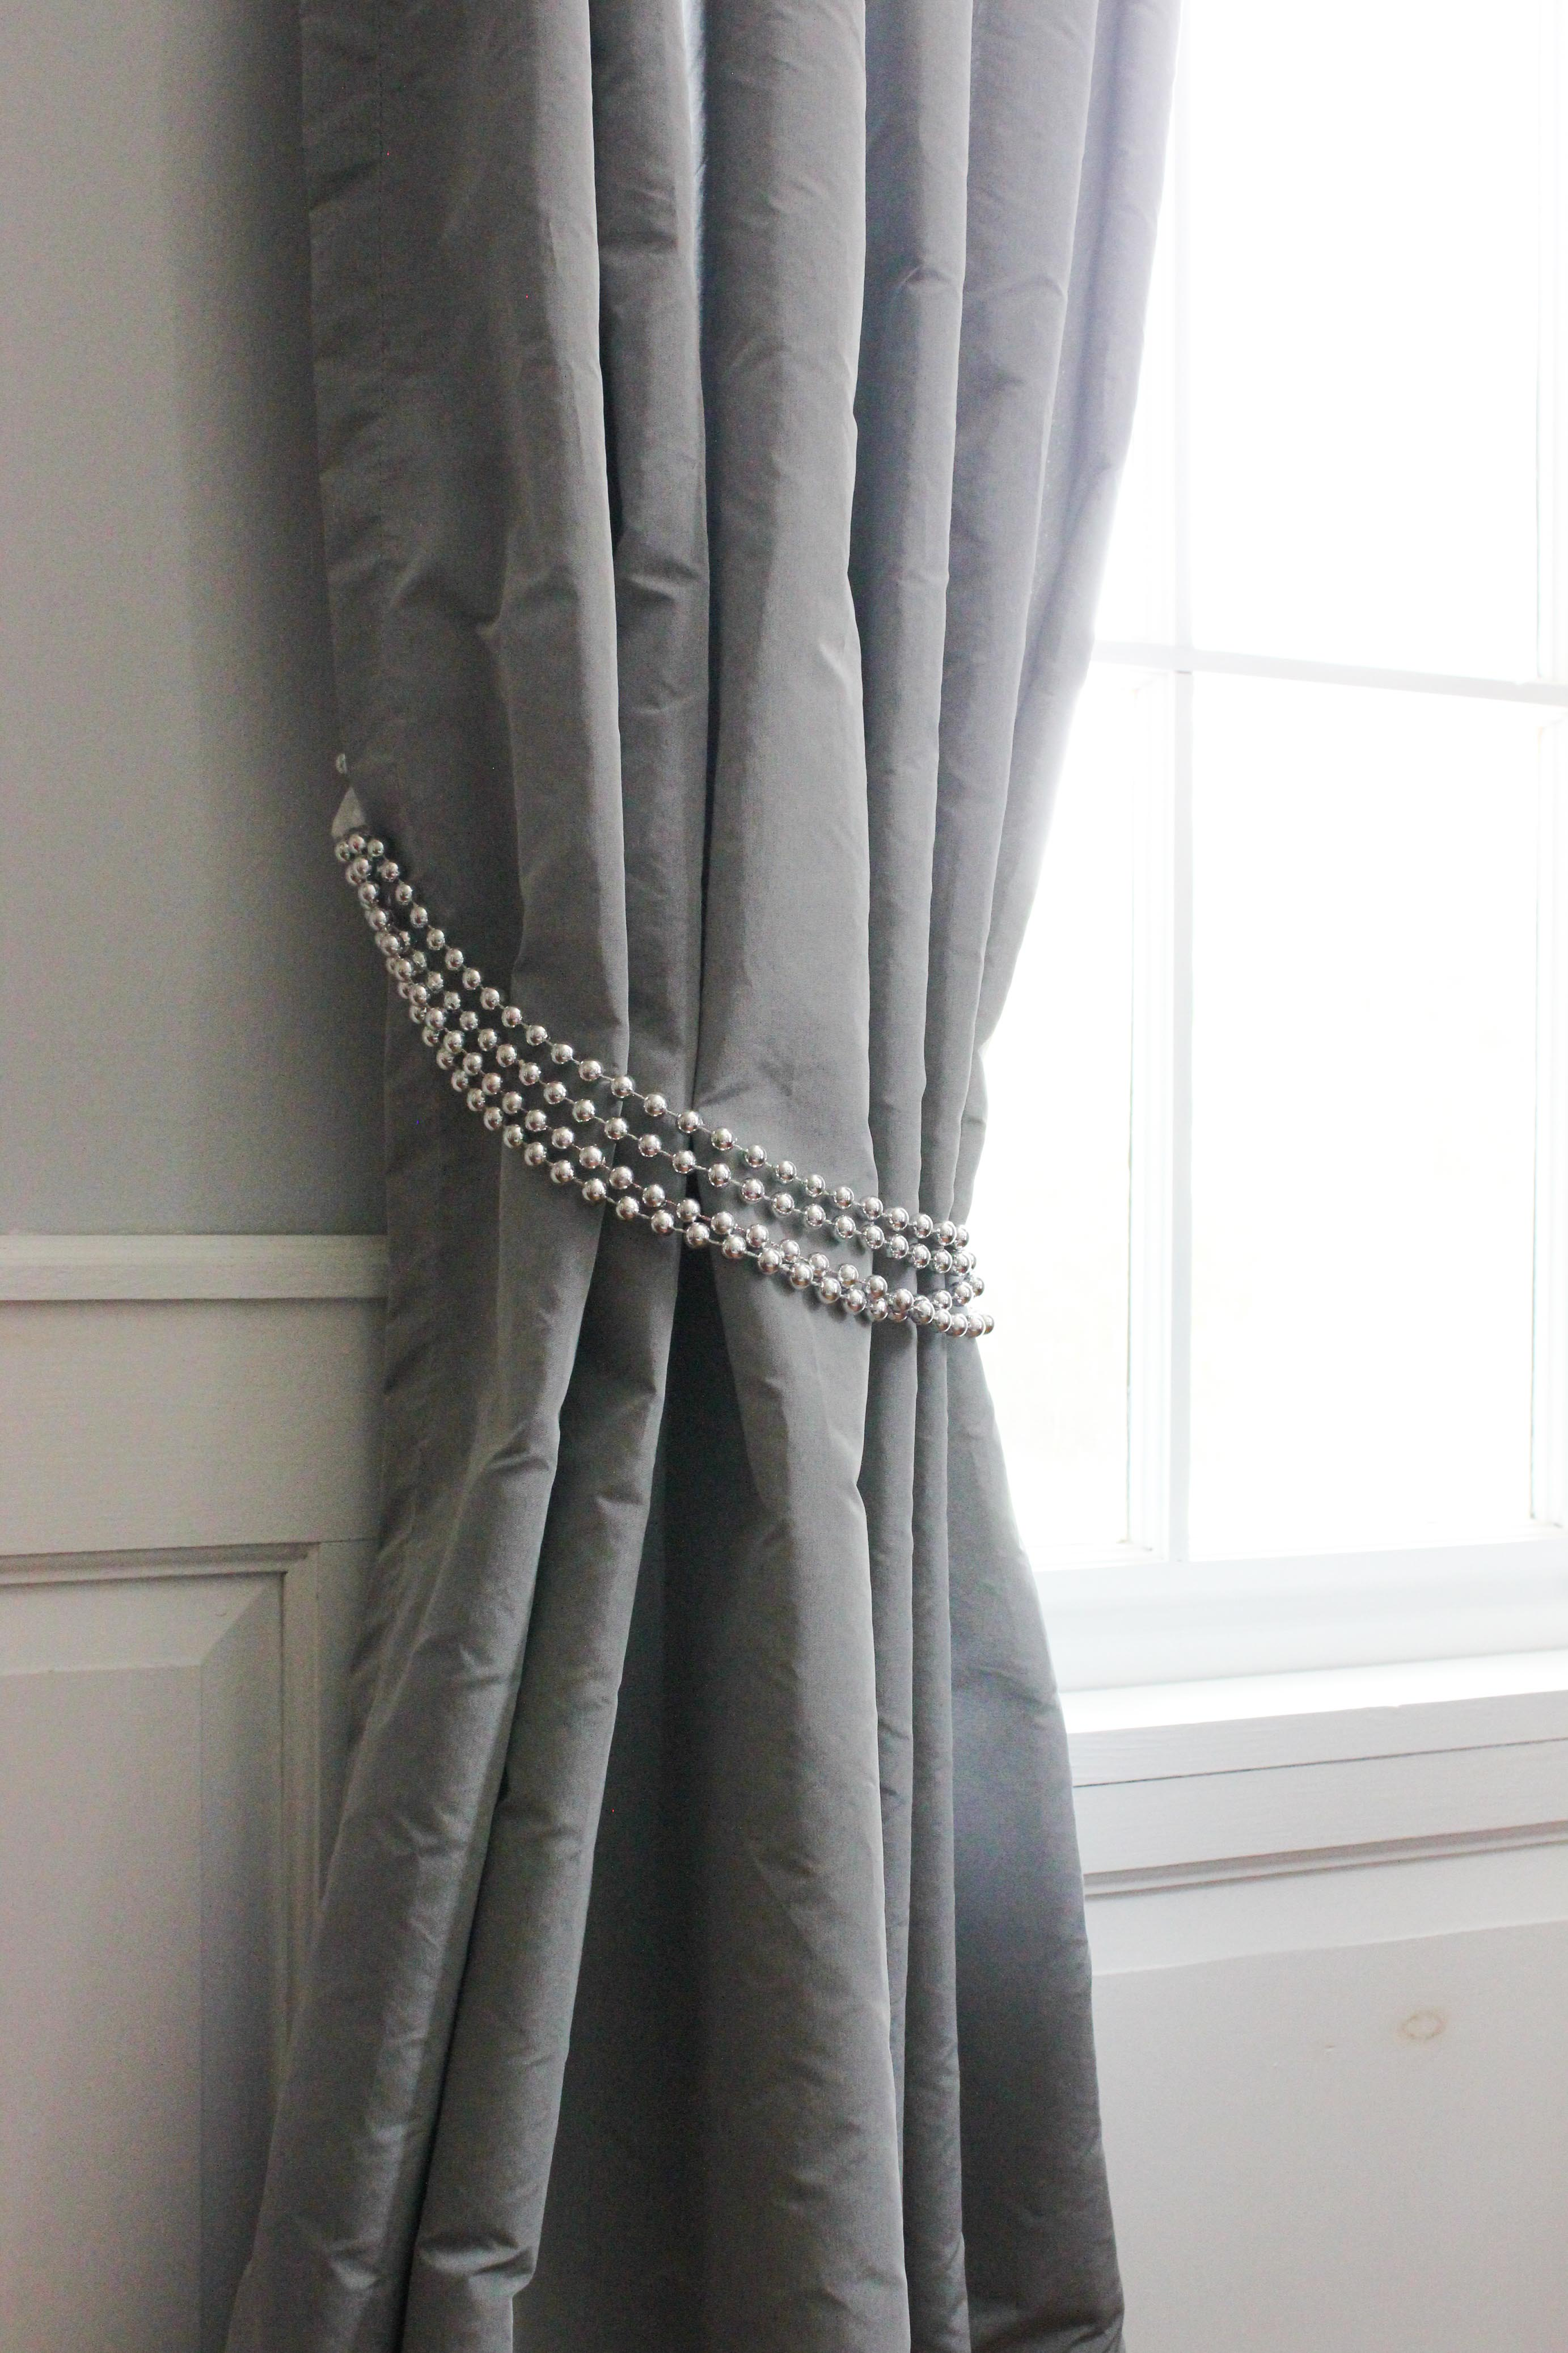 curtain tie backs 1 drapery tie-back silver beads UVSFSJI